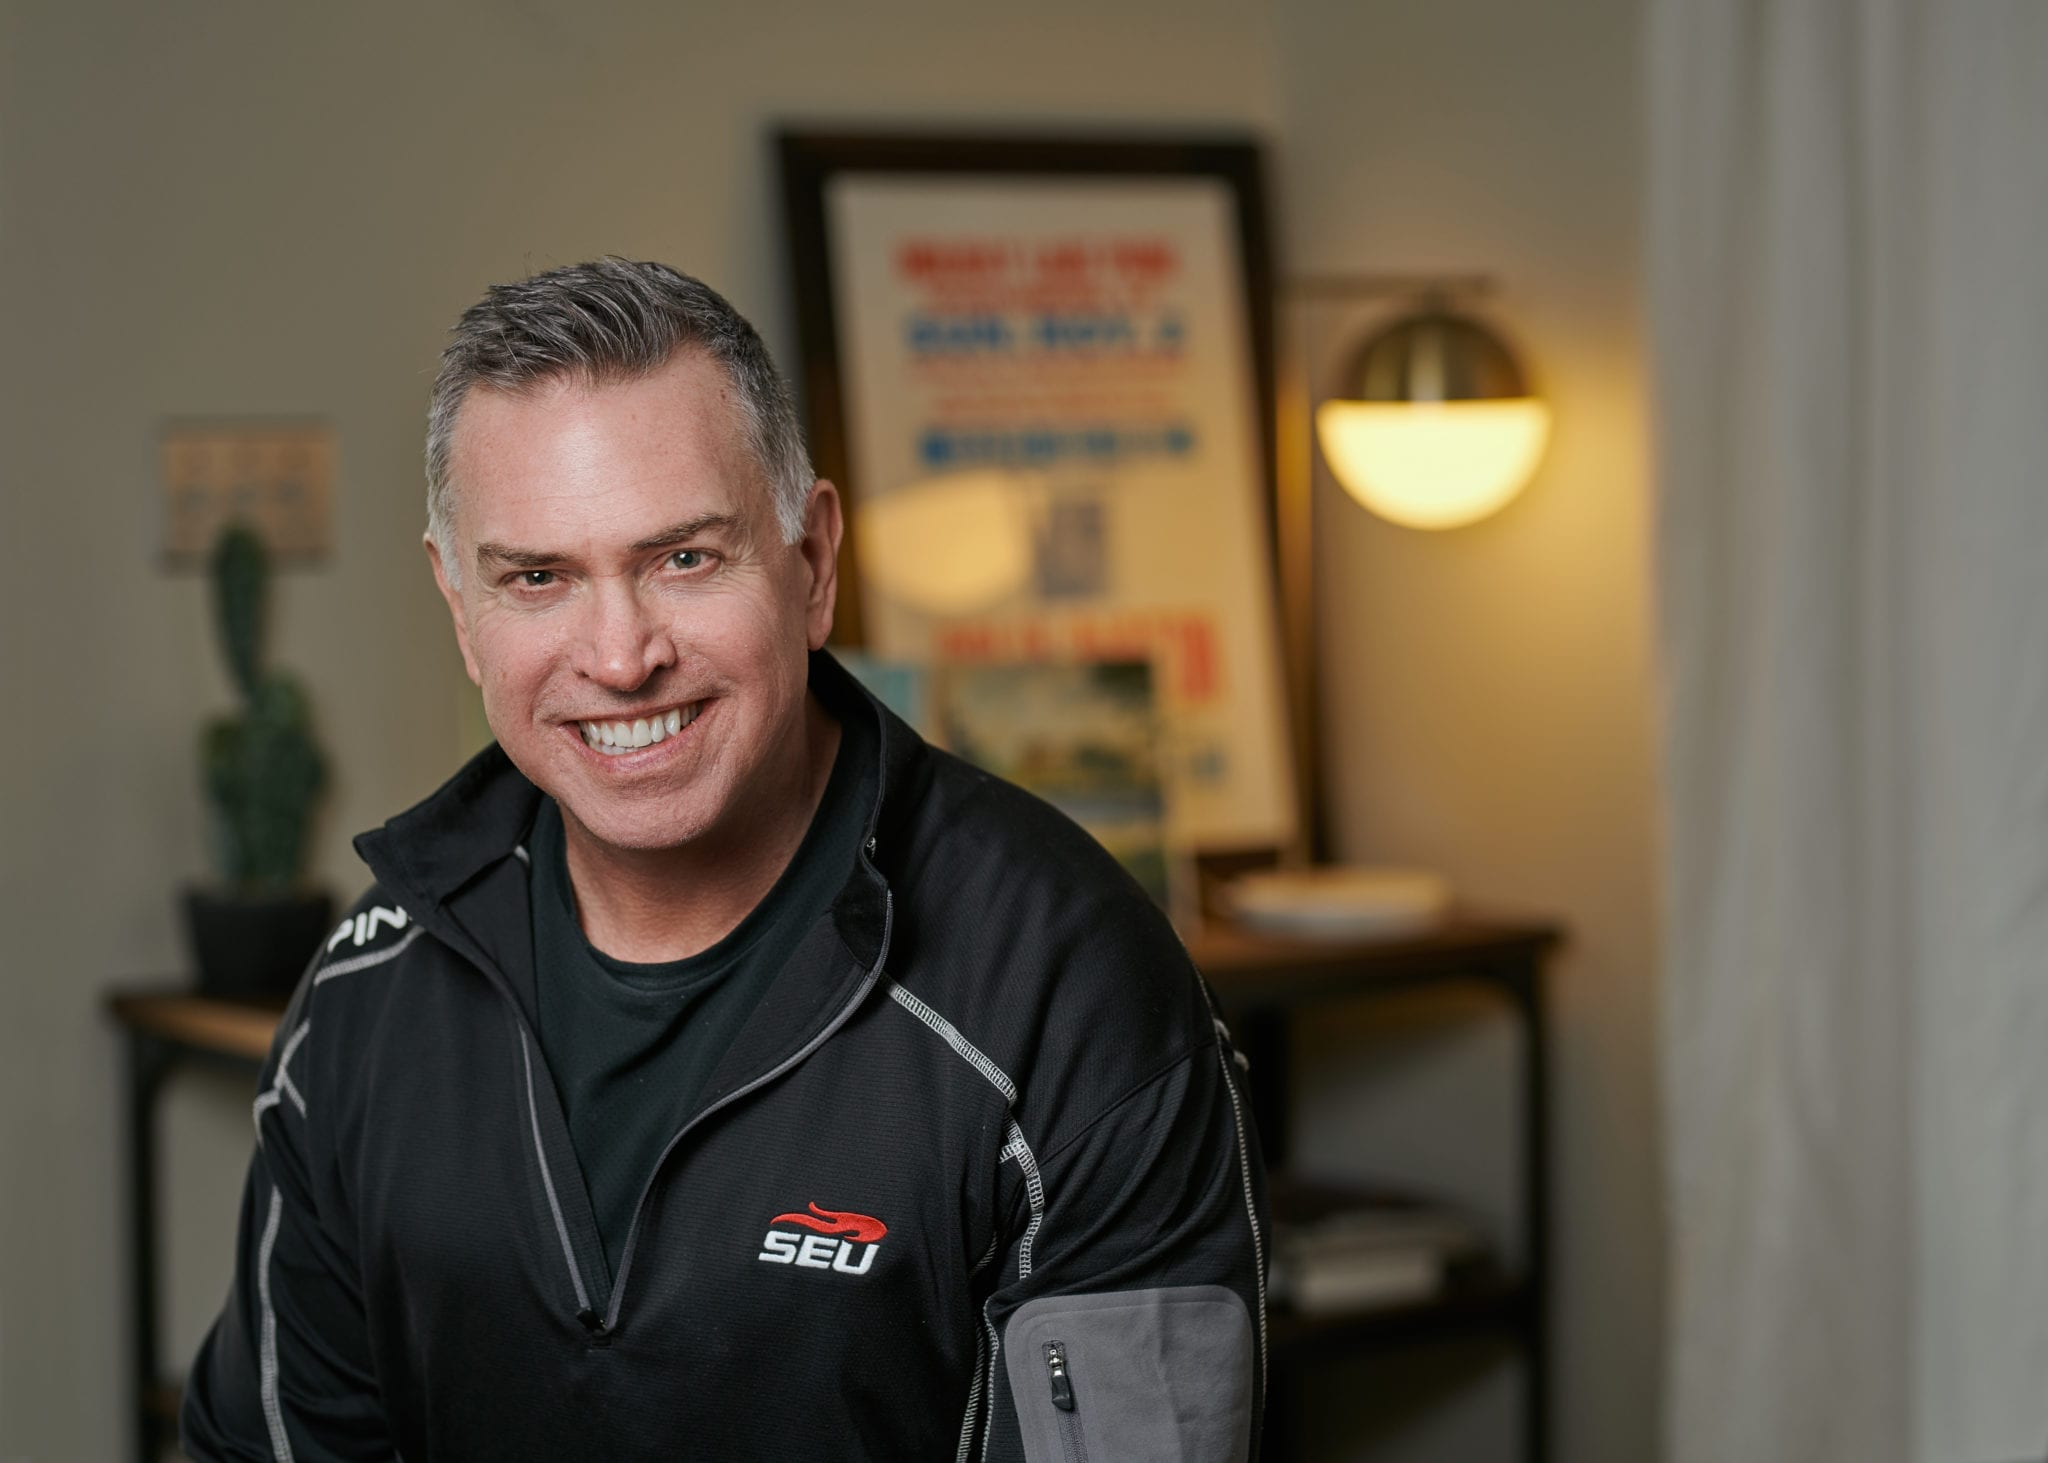 Smiling photo of Kent Ingle wearing a Southeastern University zip sweater.